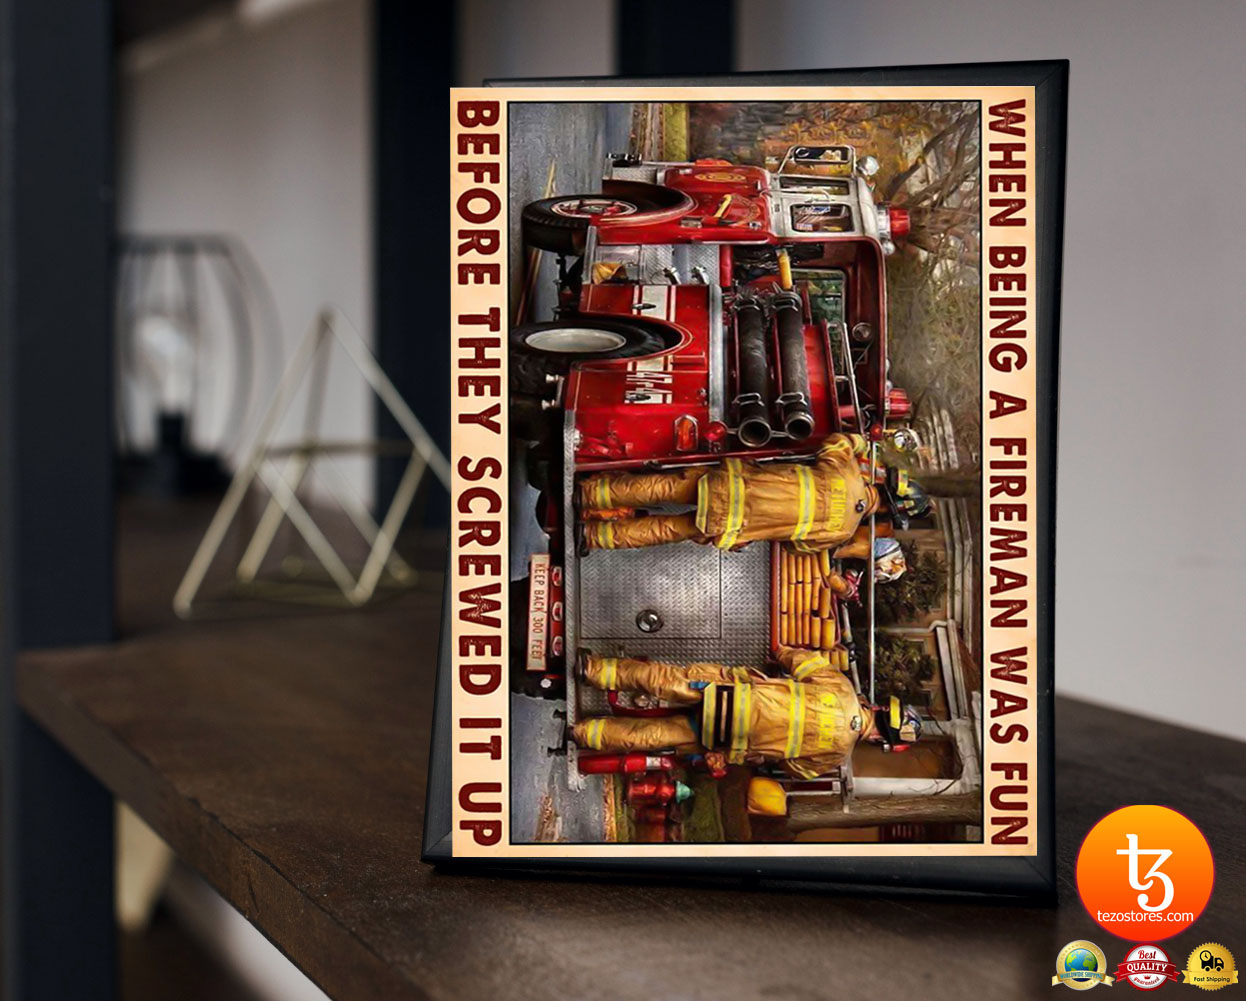 When being a fireman was fun before they screwed it up poster 19